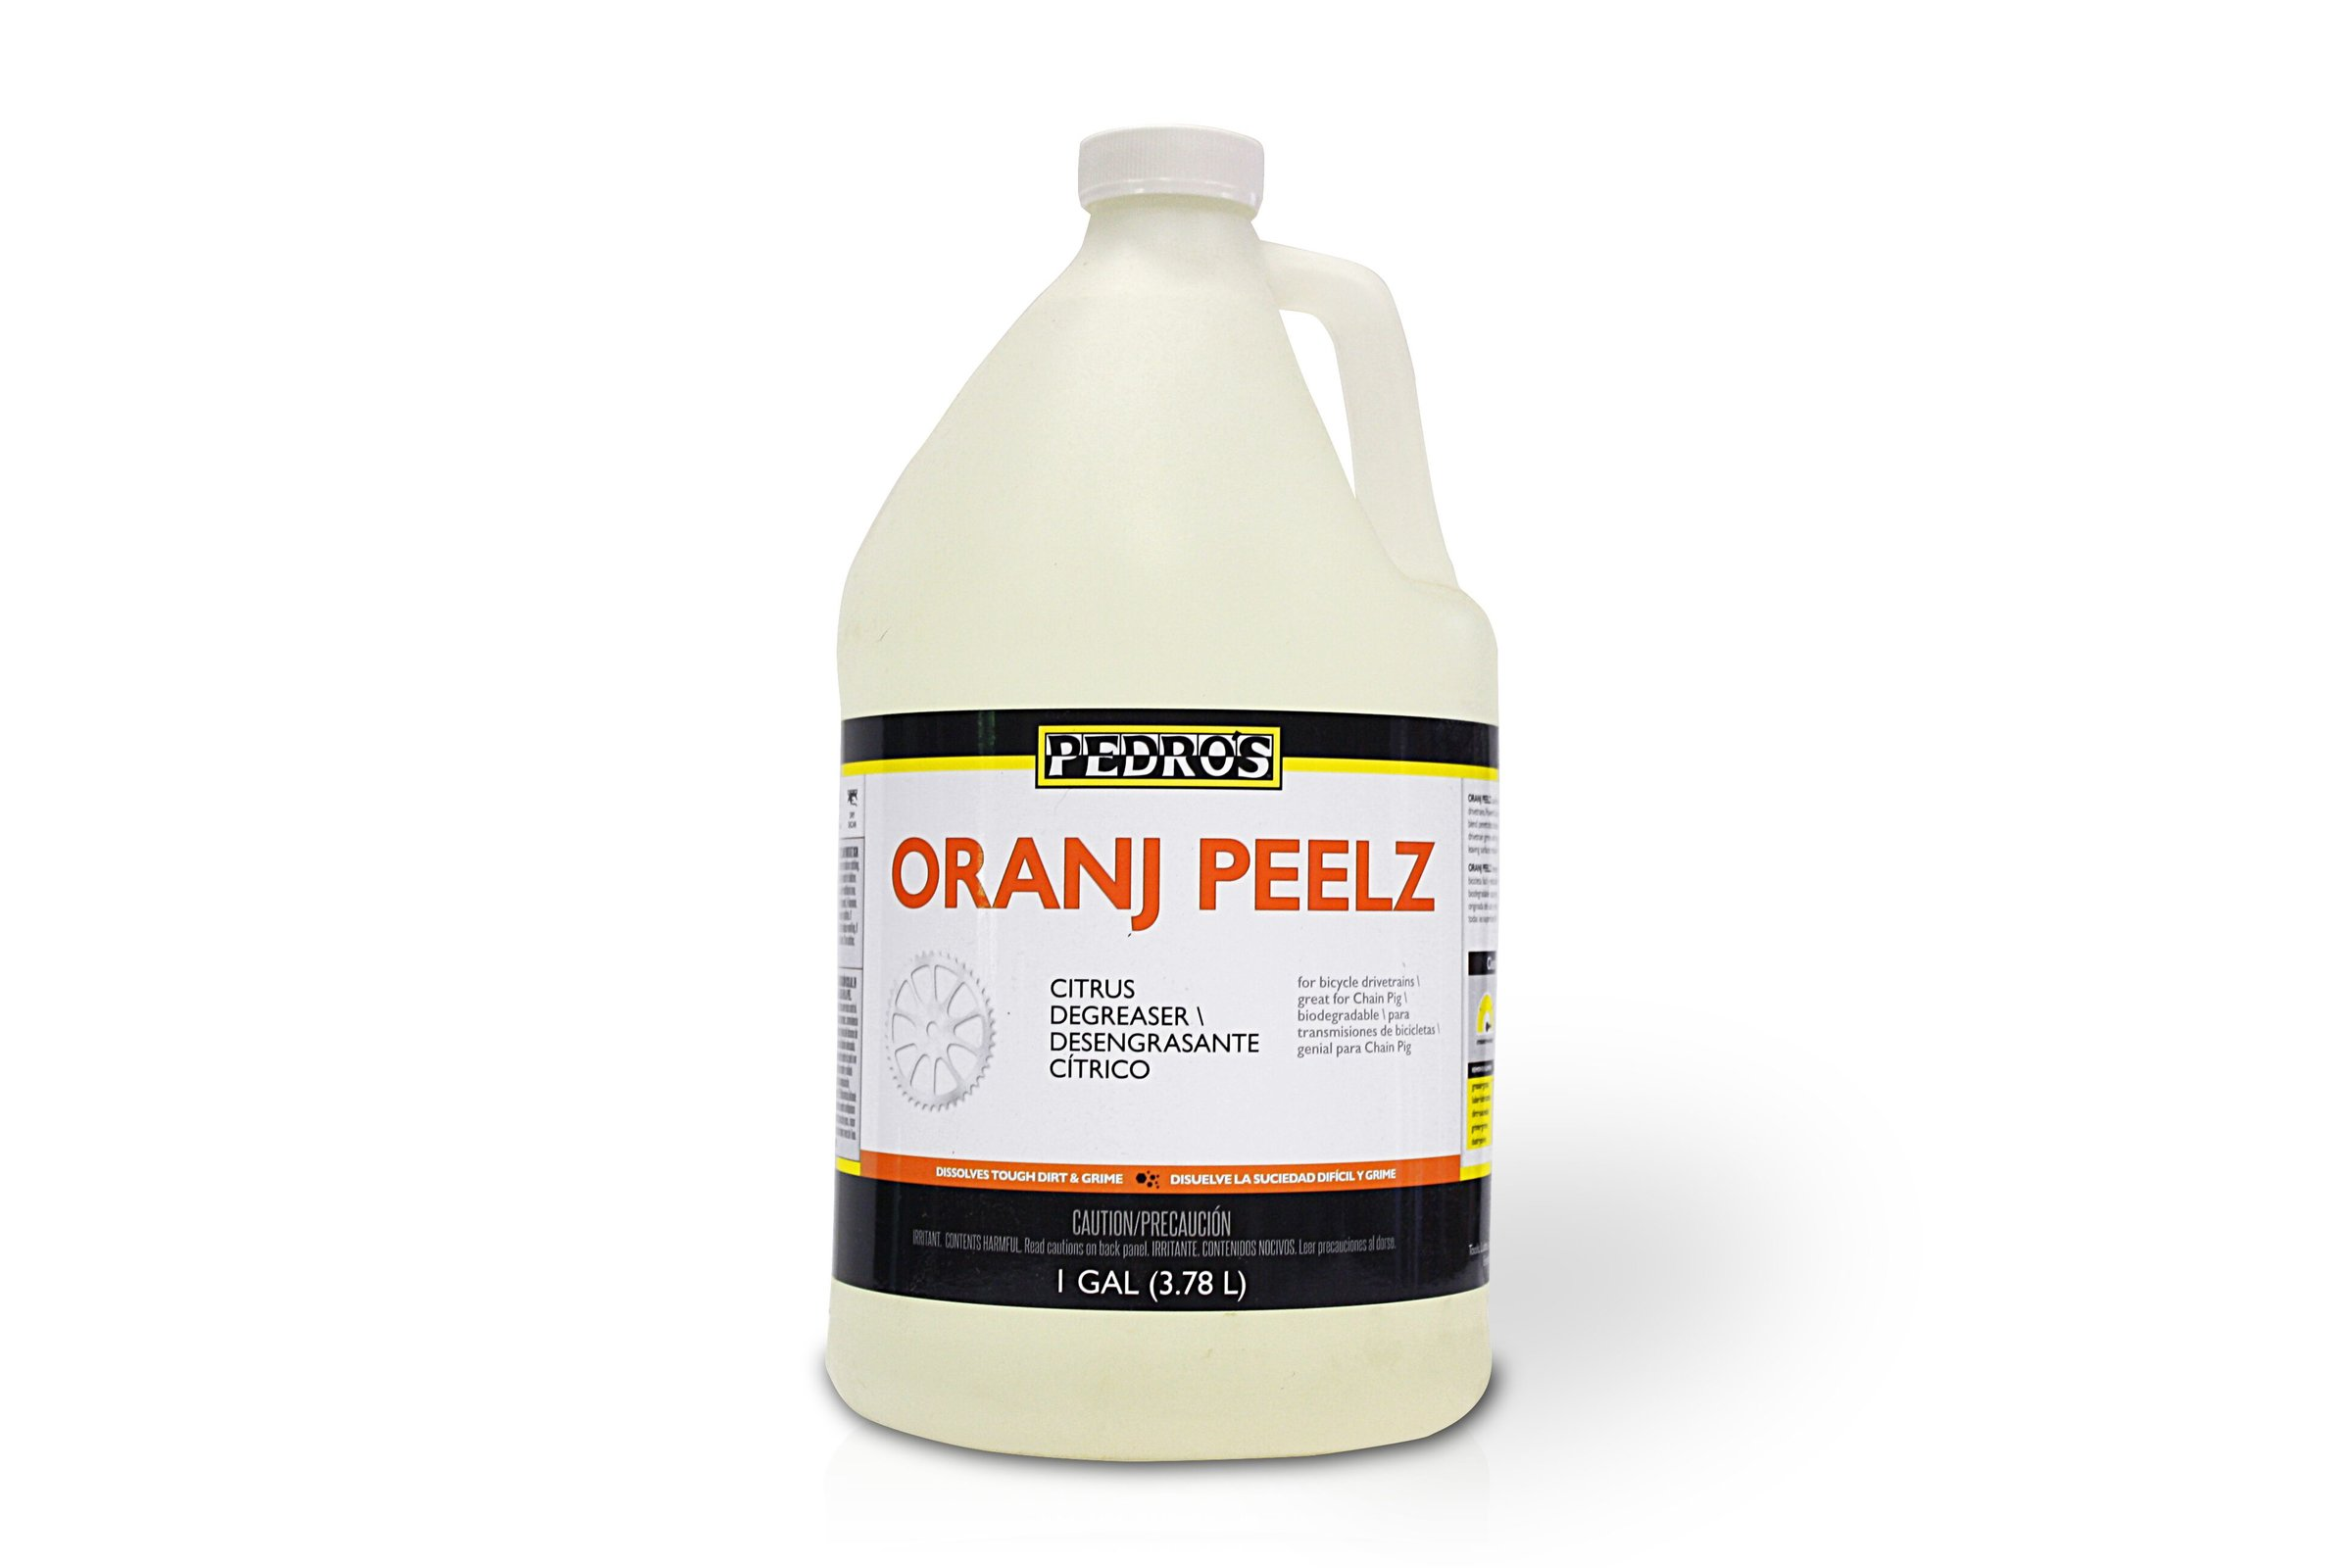 Pedro's Oranj Peelz Citrus Degreaser - Wheel & Sprocket | One of